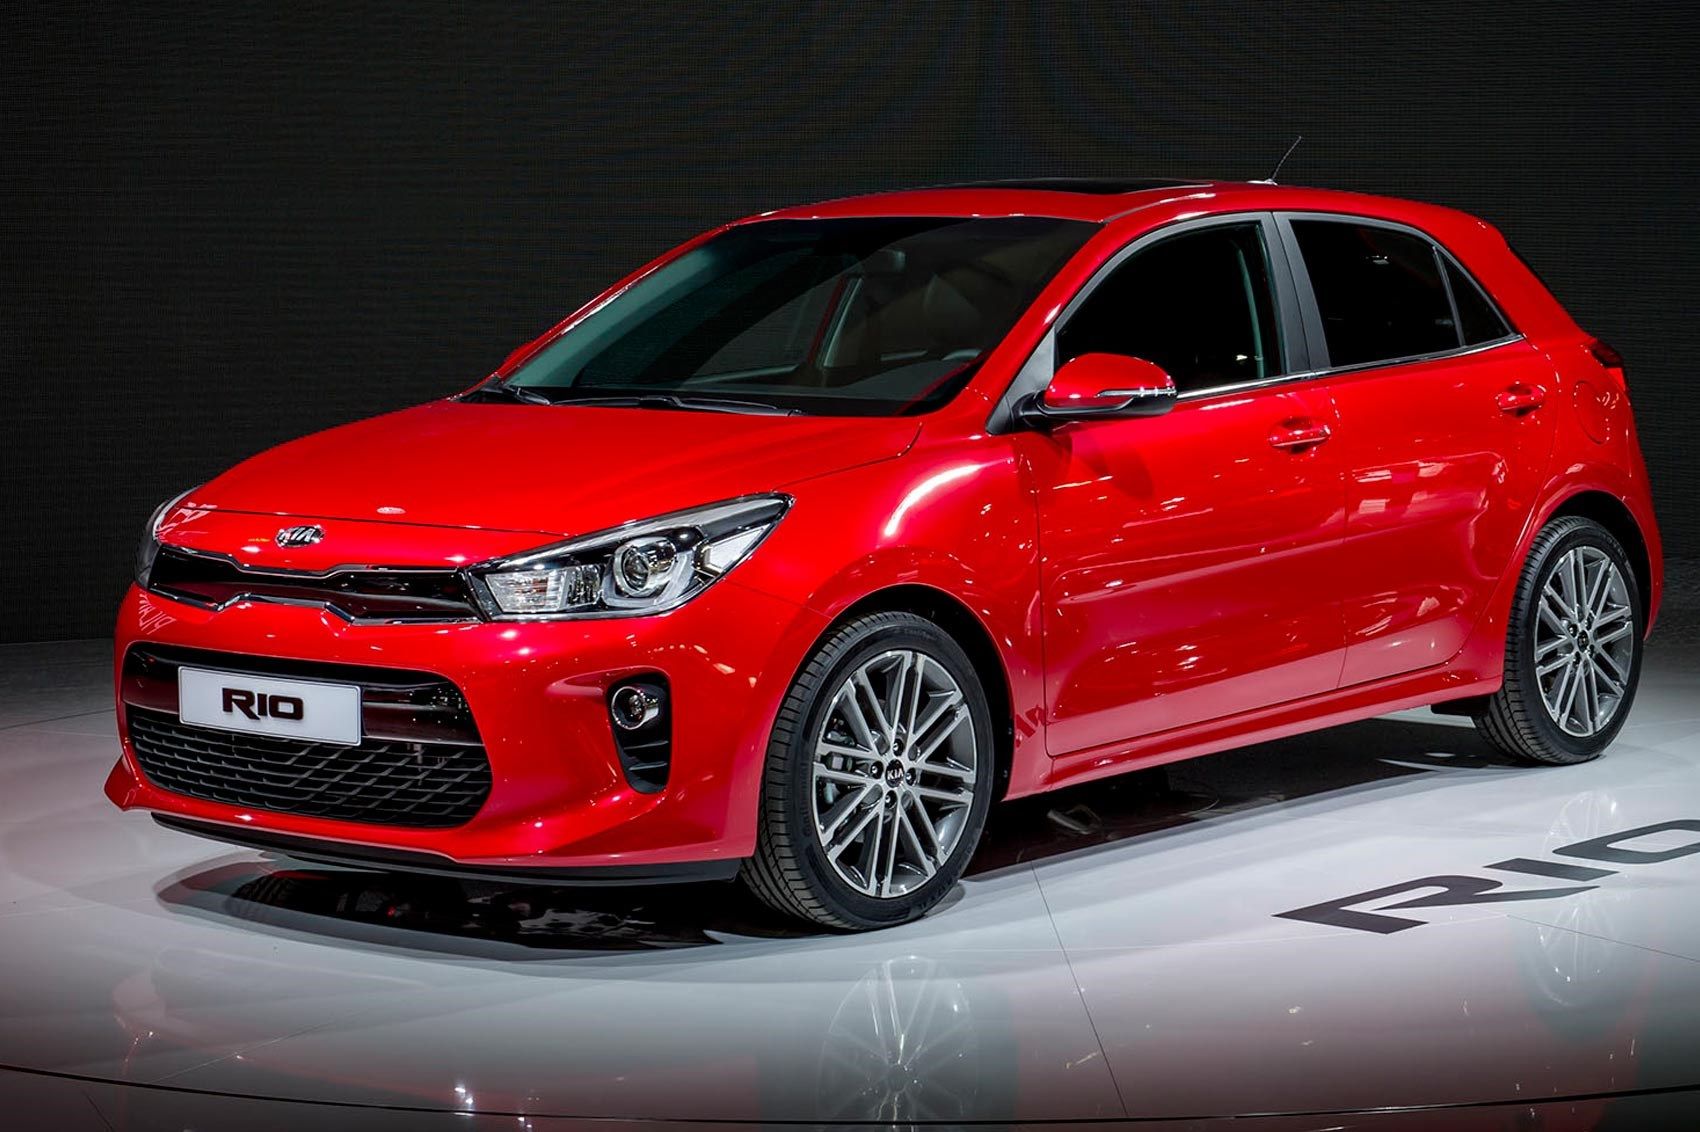 new kia rio revealed latest on kia s upcoming fiesta. Black Bedroom Furniture Sets. Home Design Ideas